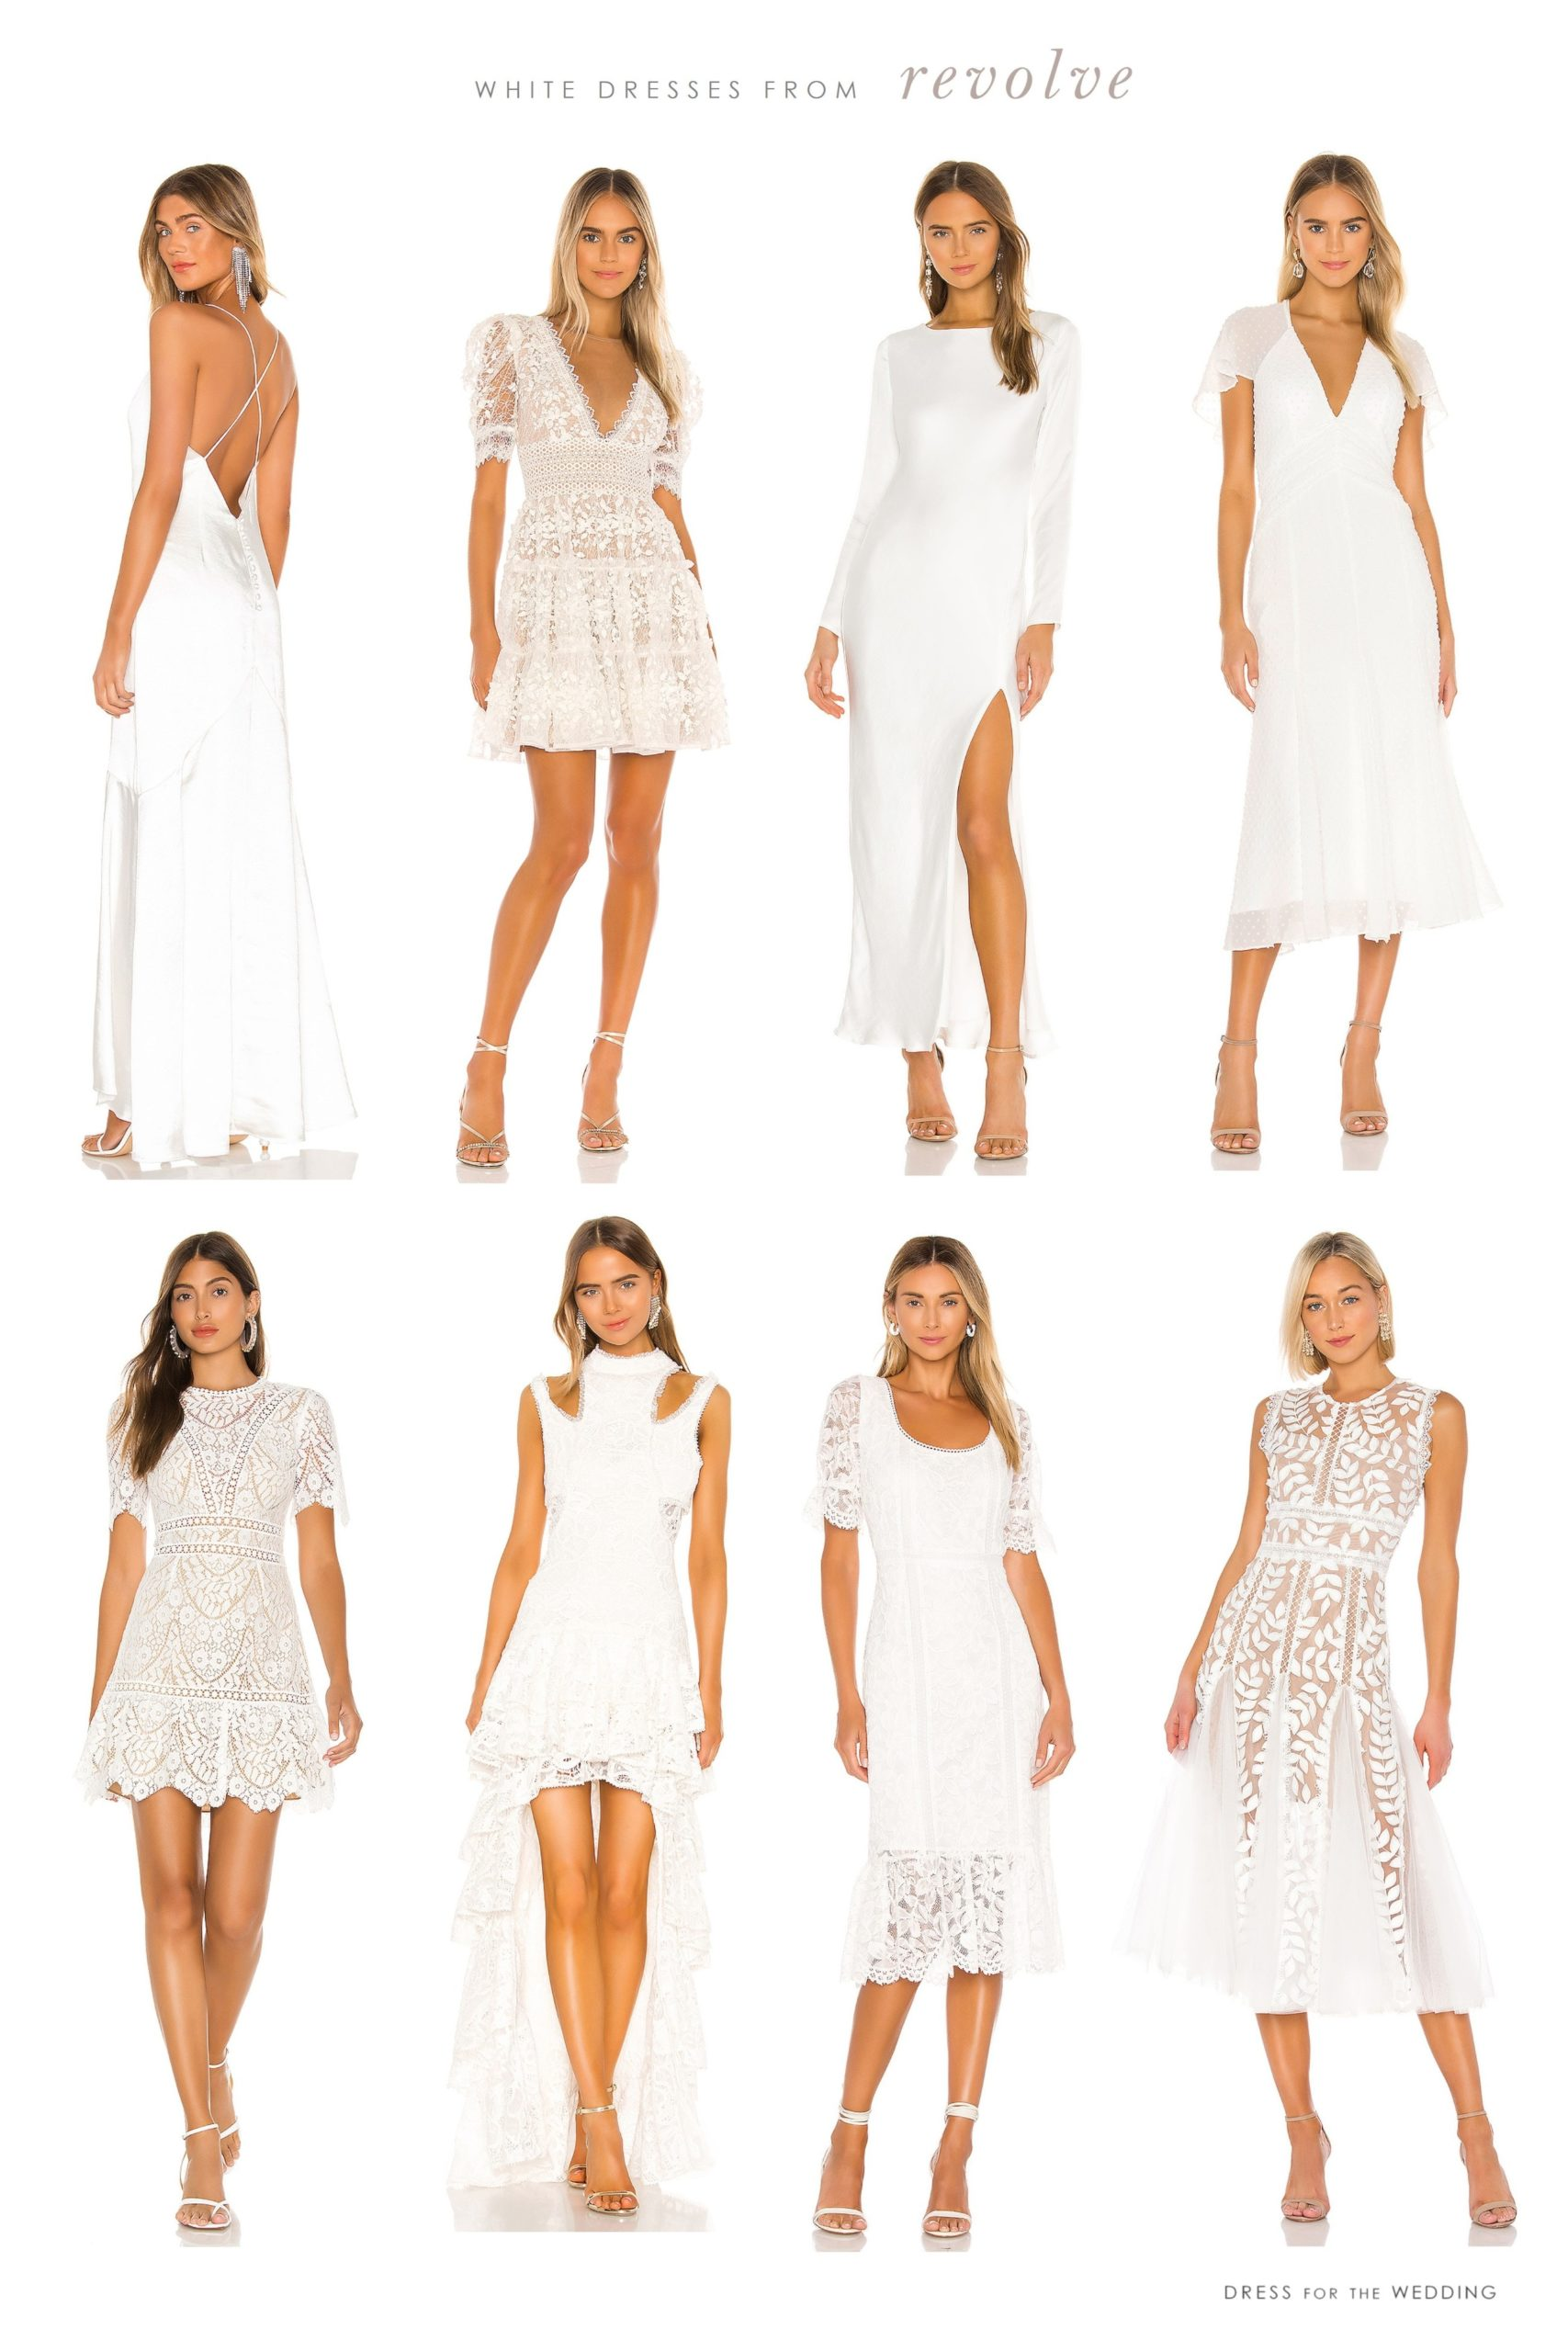 White Dresses For Weddings From Revolve Dress For The Wedding Wedding guest attire and great wedding outfit ideas for wedding guests for every season and dress code. white dresses for weddings from revolve